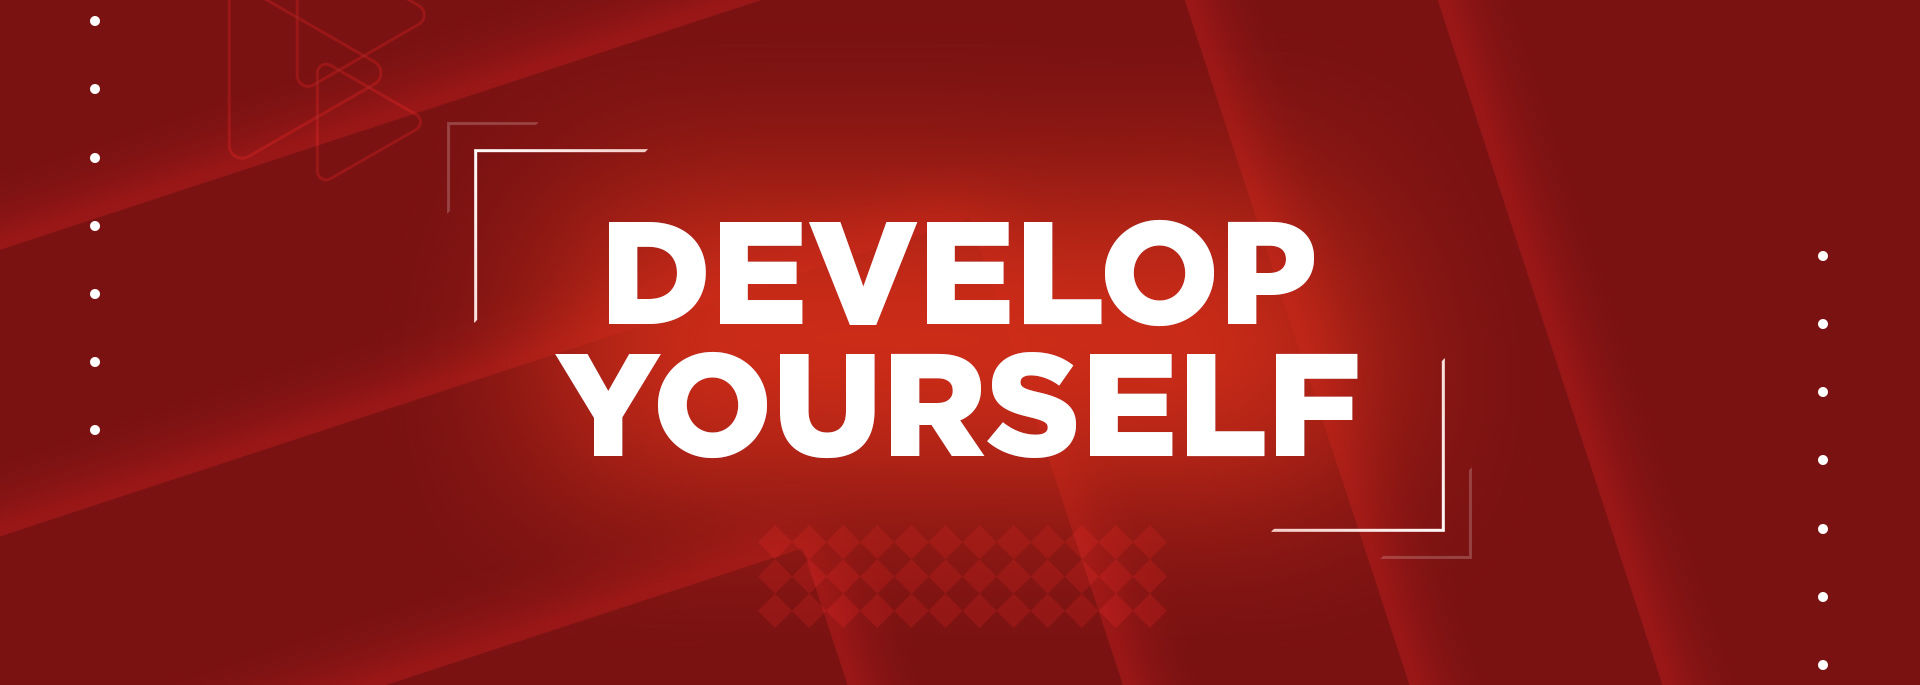 Develop Yourself channel